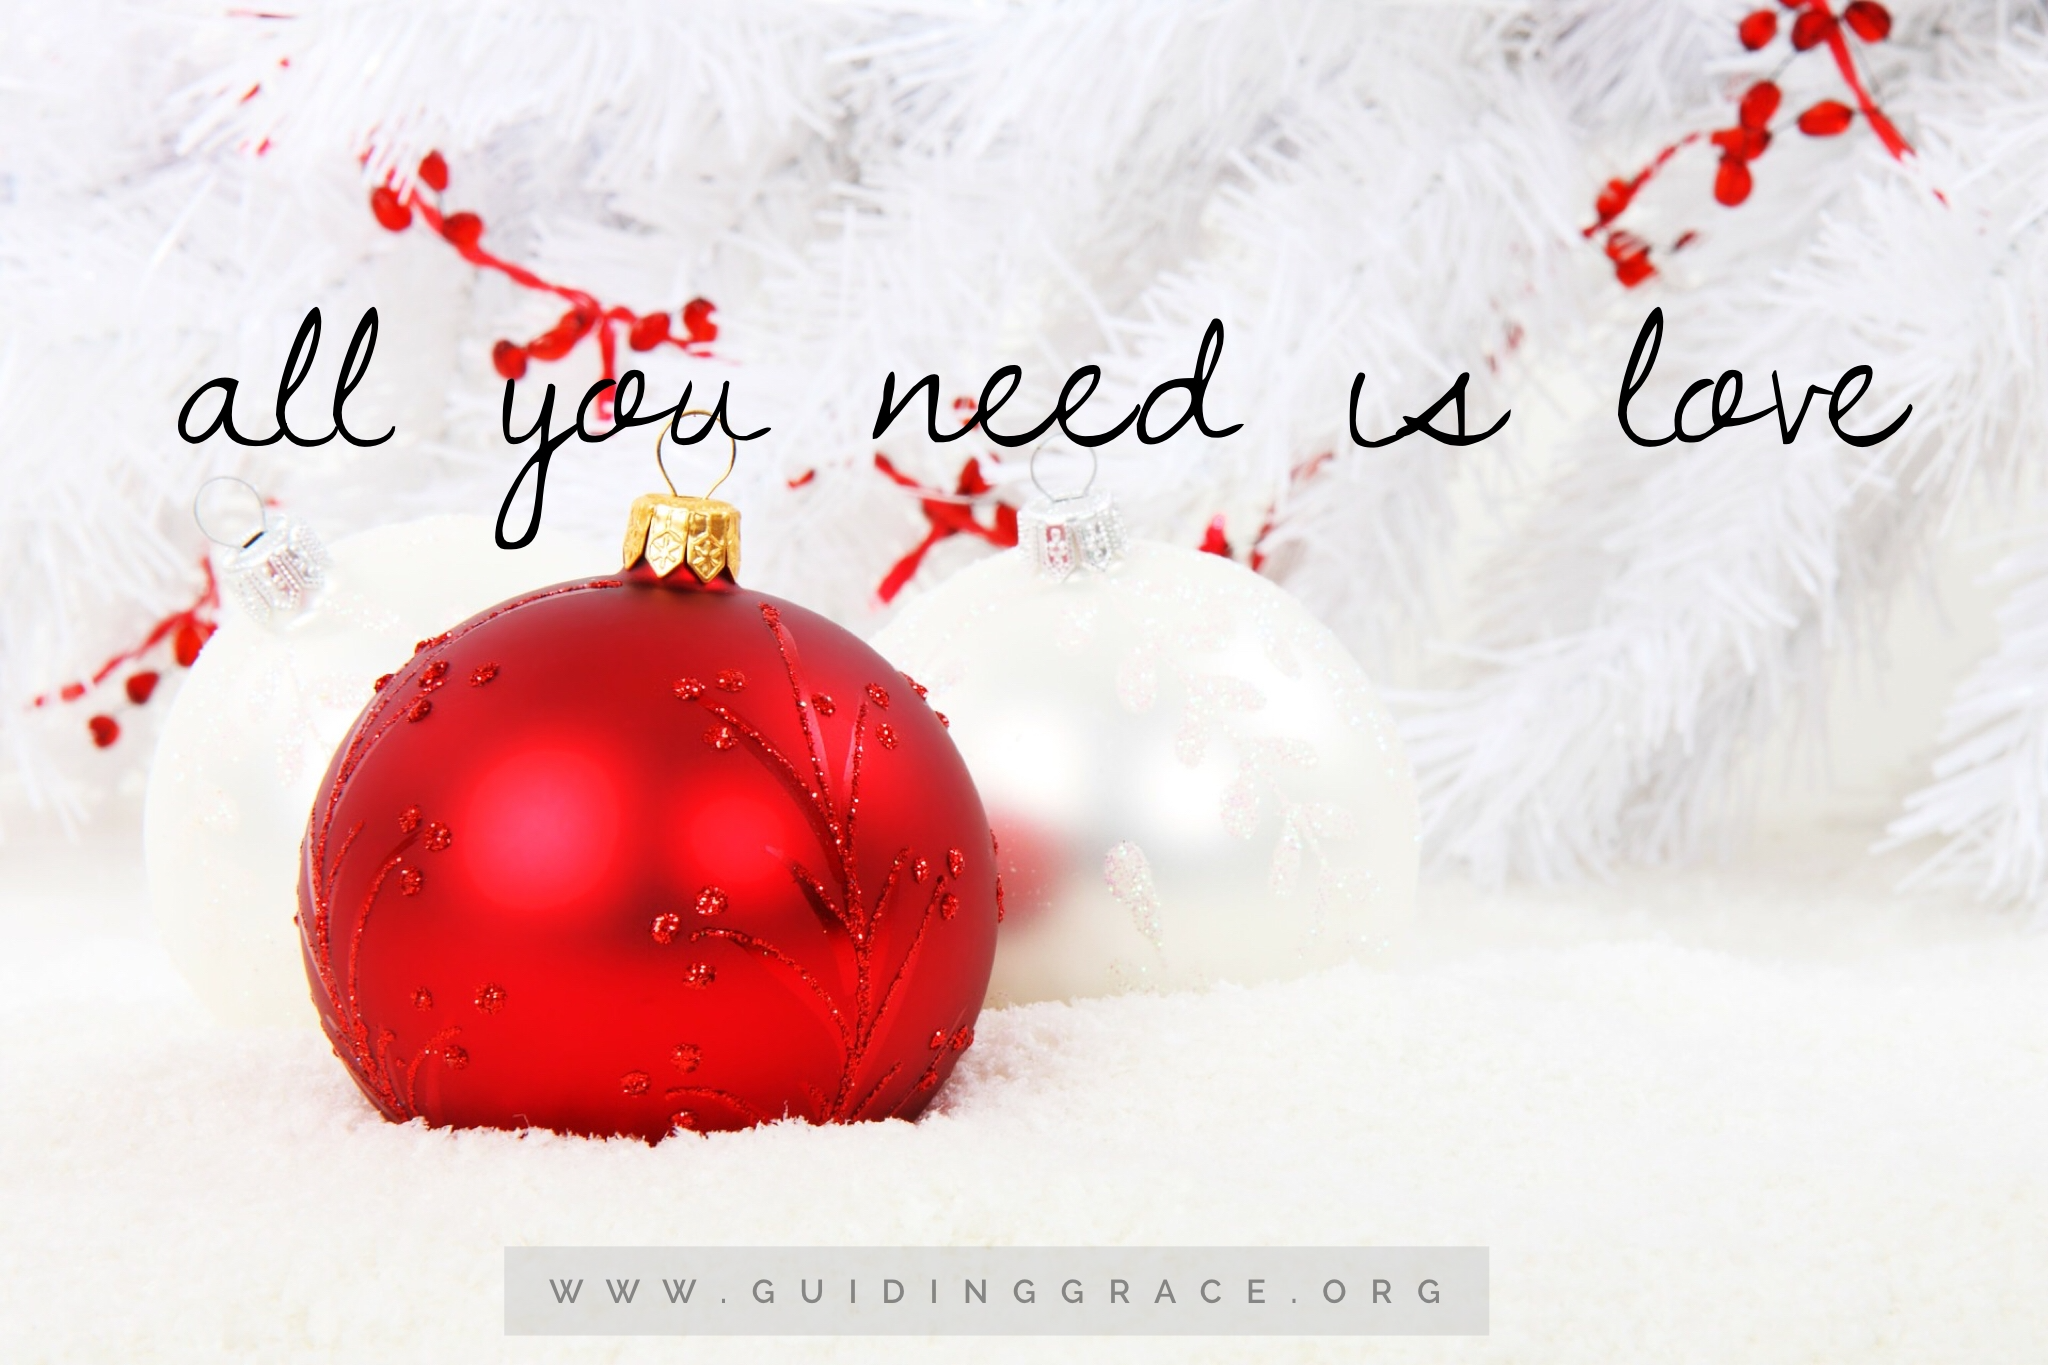 Very All You Need Is Love – Guiding GRACE WO01